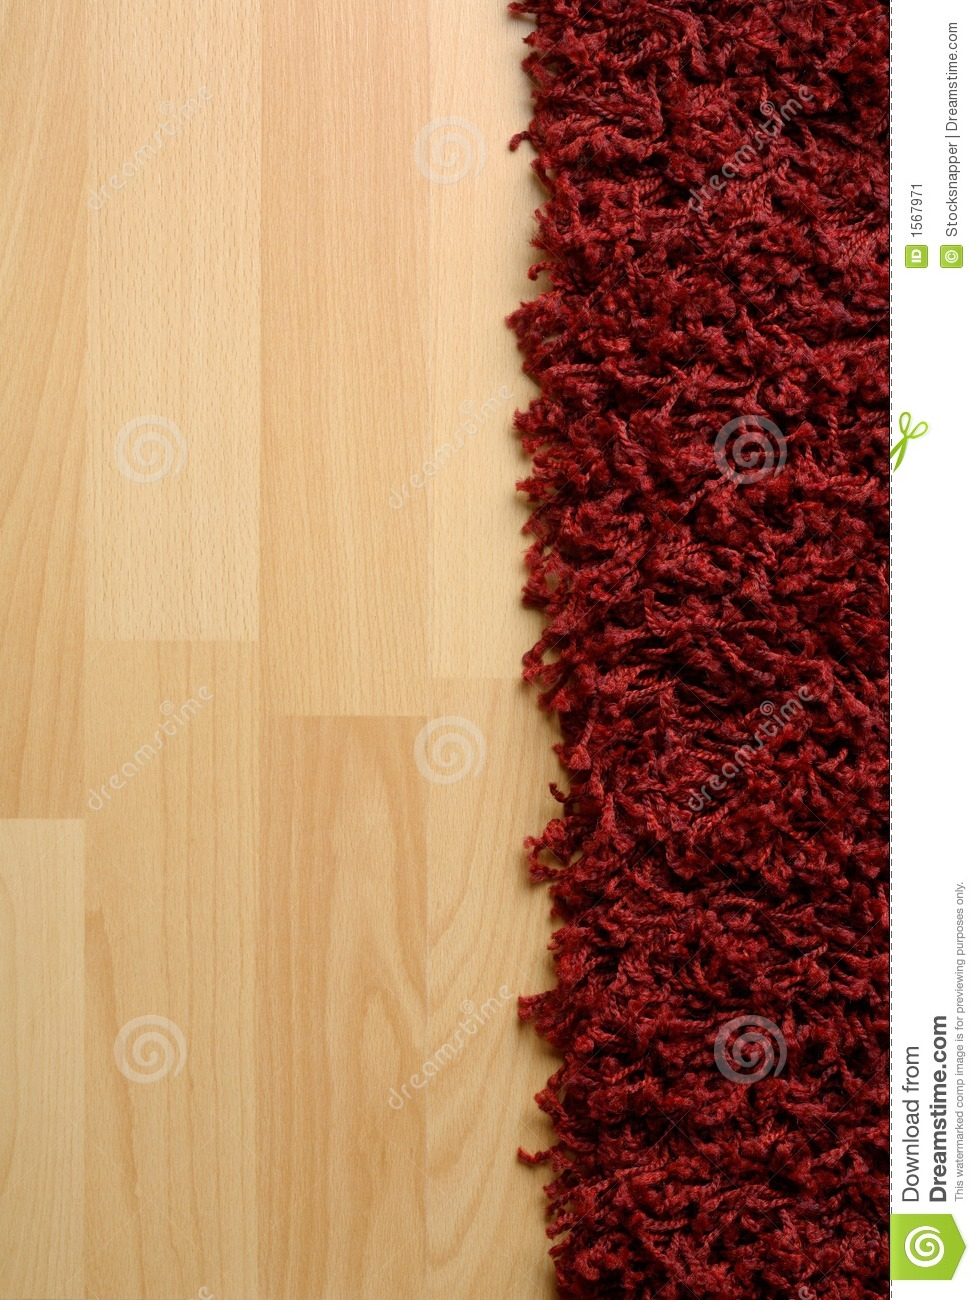 Rug on laminate floor stock image image 1567971 for Rugs for laminate floors